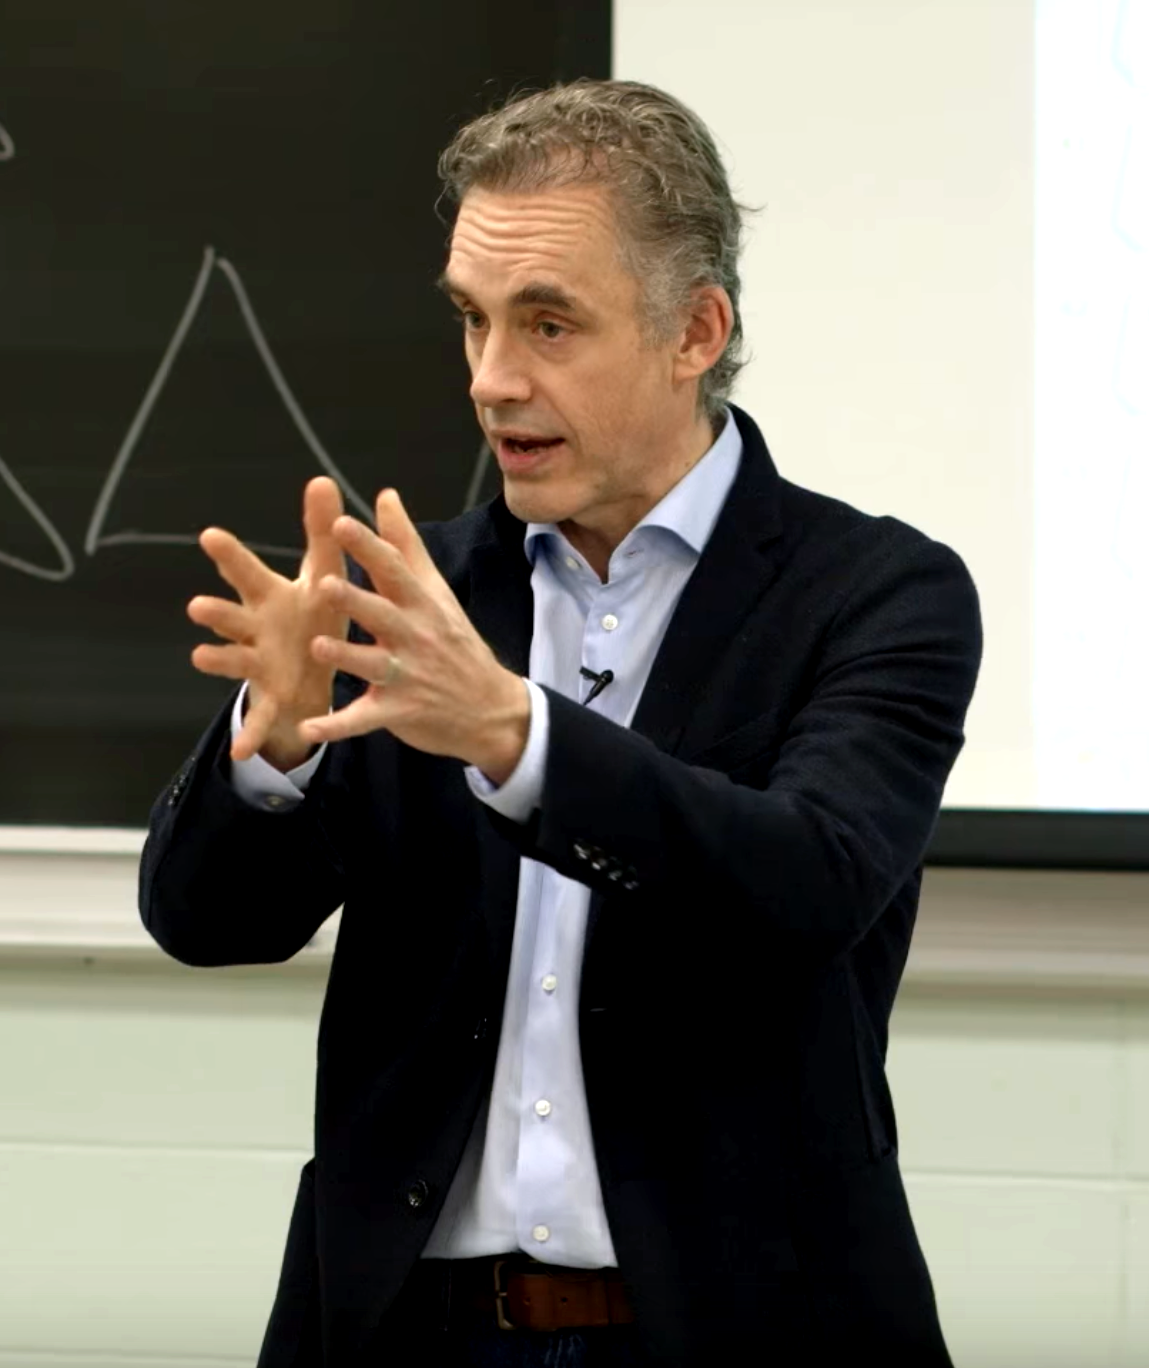 Dr.Jordan Peterson delivering a lecture at the University of Toronto in 2017